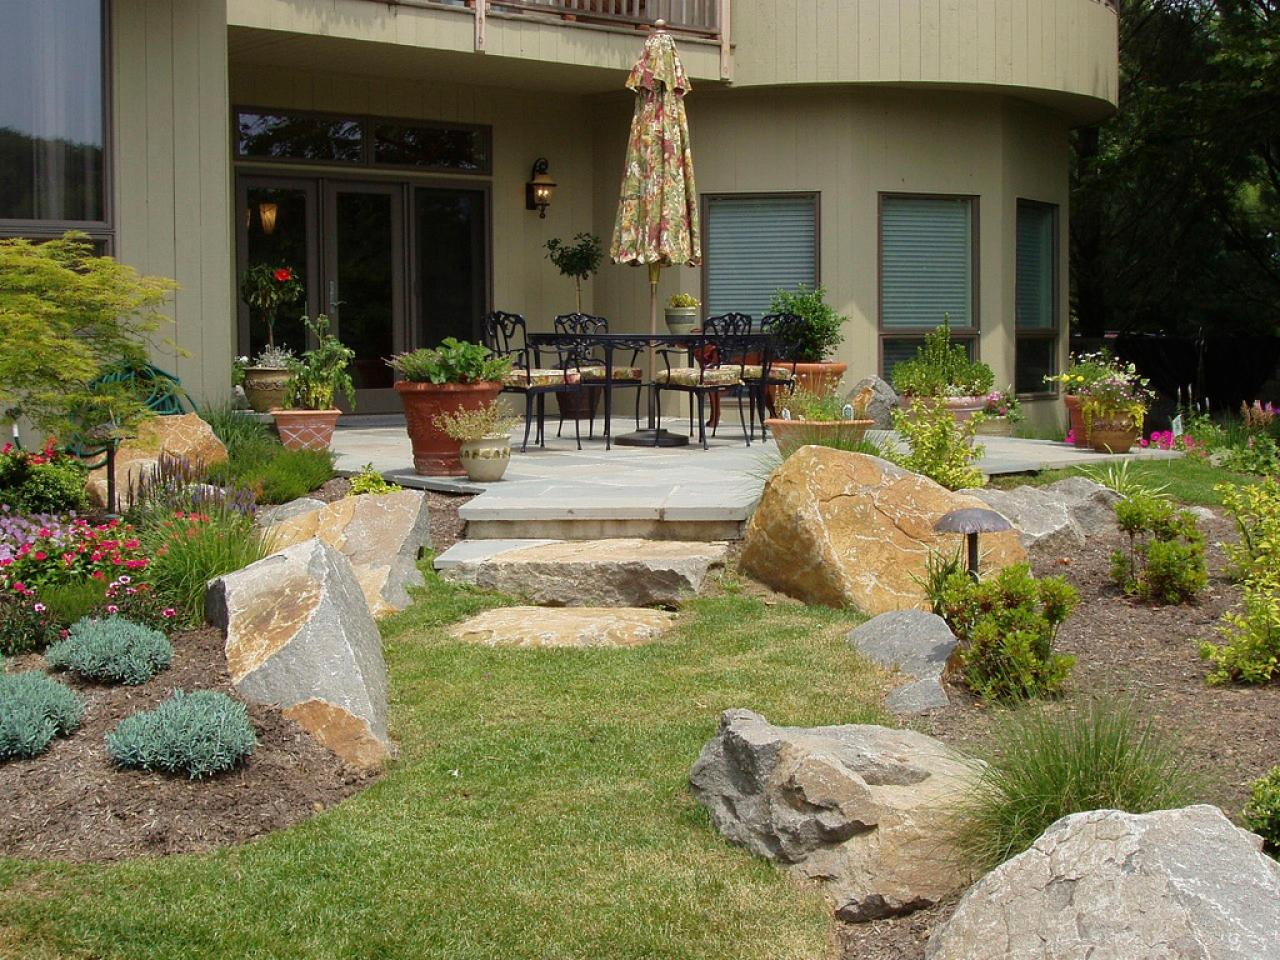 Patio landscaping ideas hgtv Best backyard landscape designs